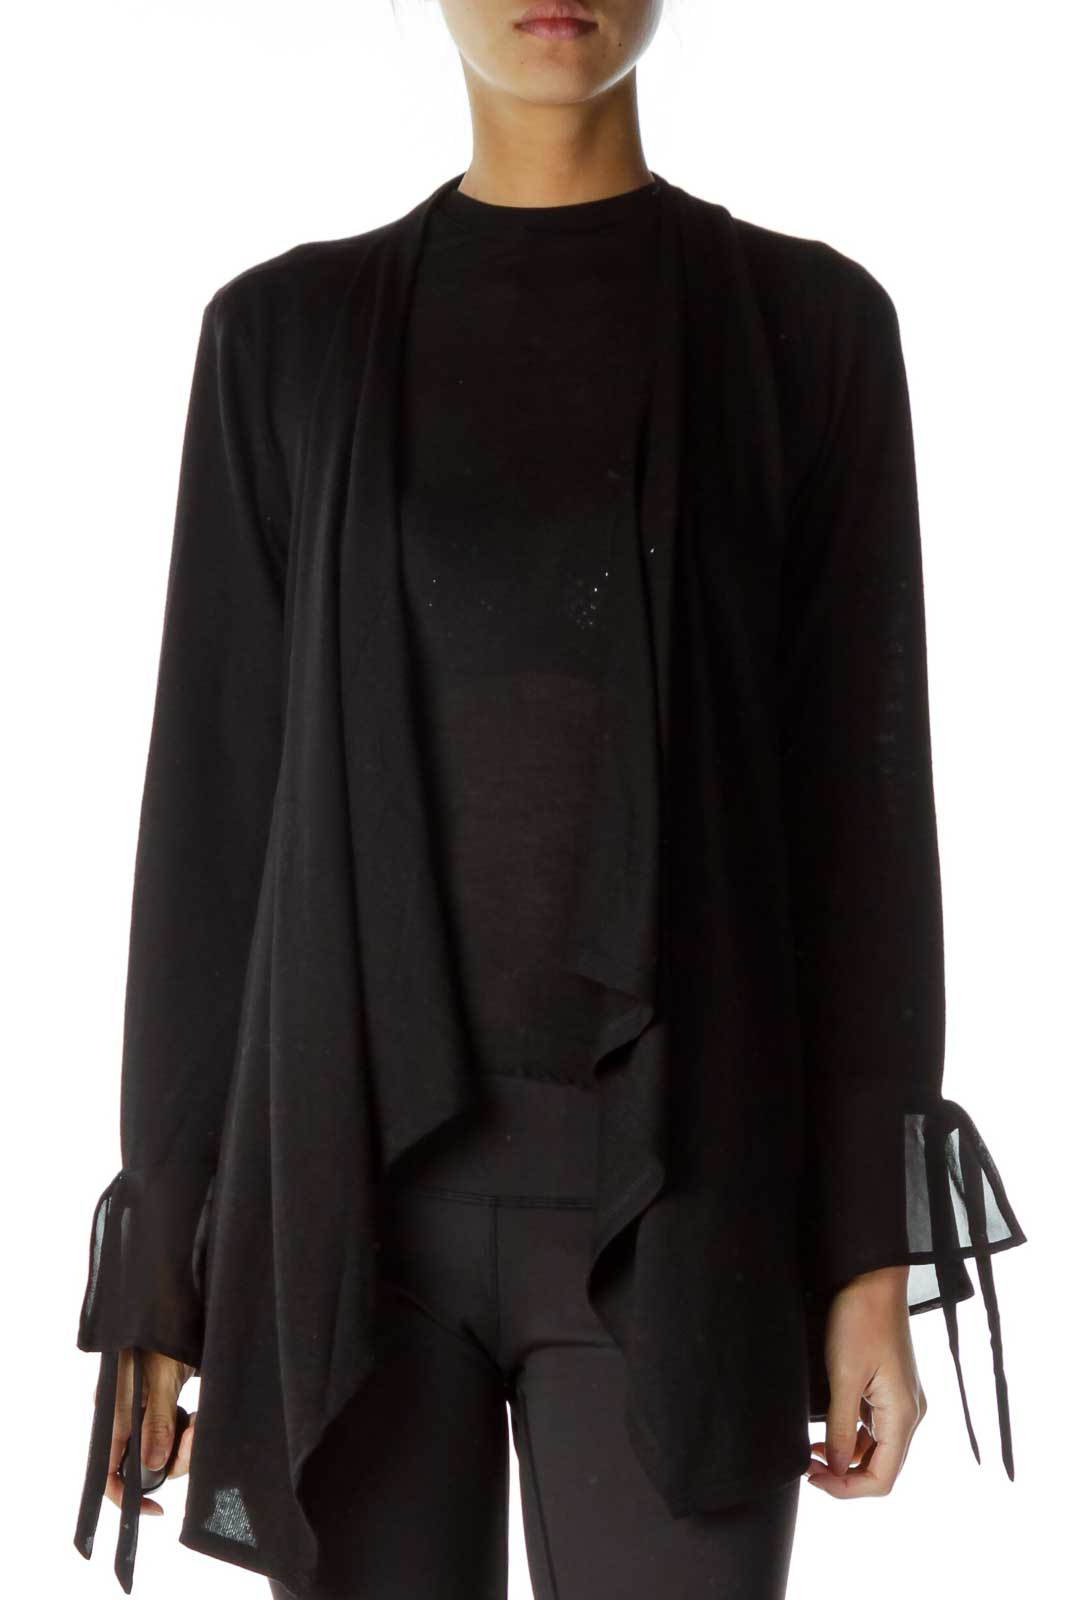 Black Lace-up Back Cardigan with Gems details Front